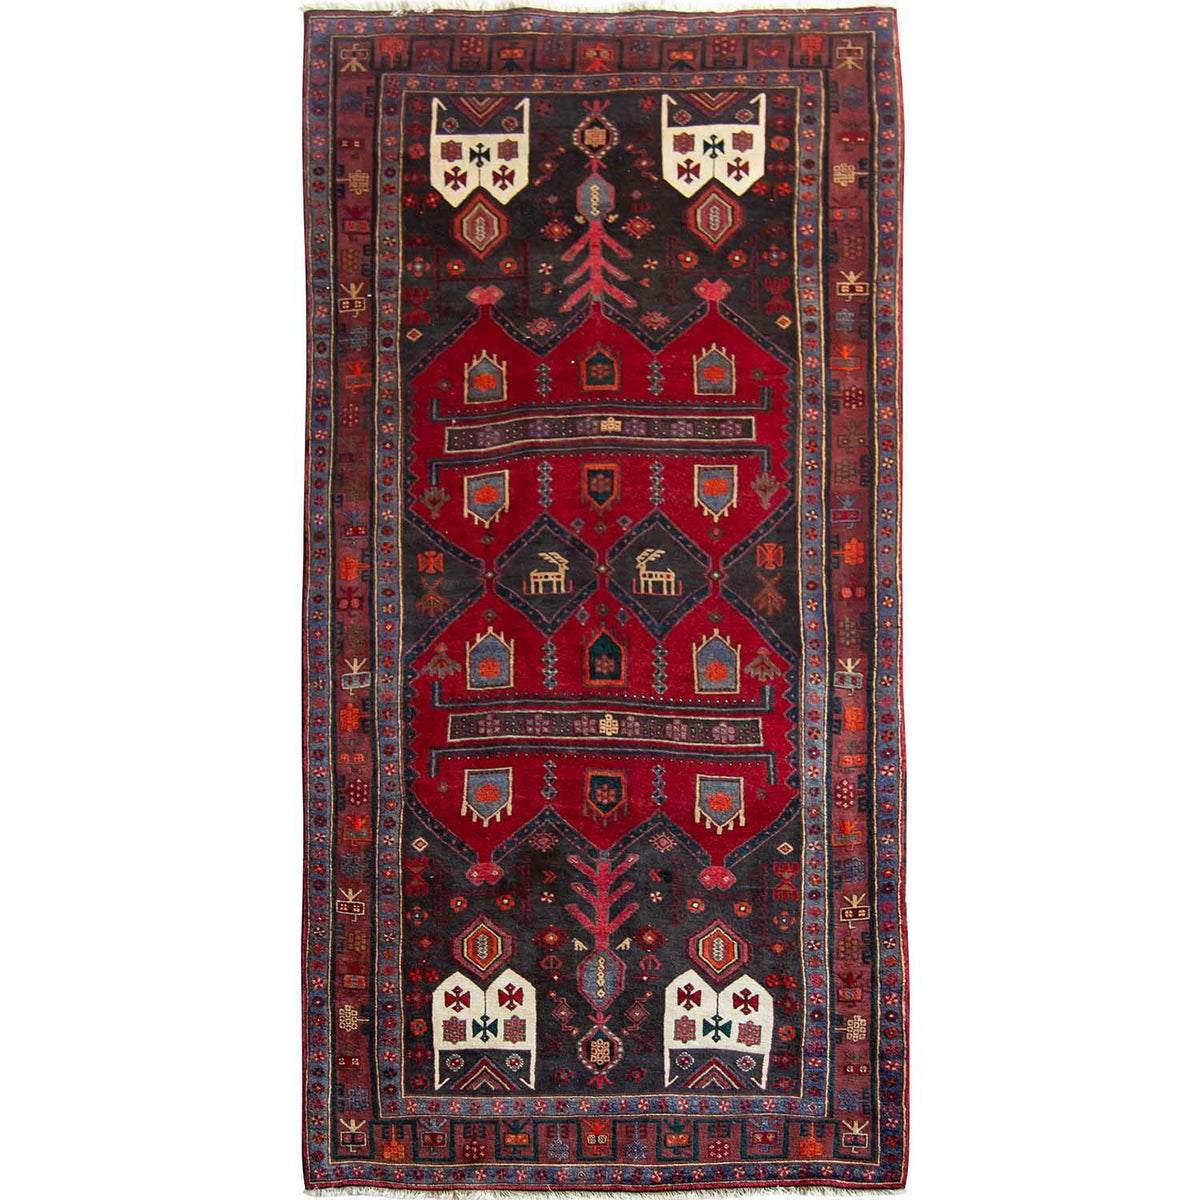 Fine Hand-knotted Tribal Wool Kolyai Runner 153cm x 376cm Persian-Rug | House-of-Haghi | NewMarket | Auckland | NZ | Handmade Persian Rugs | Hand Knotted Persian Rugs